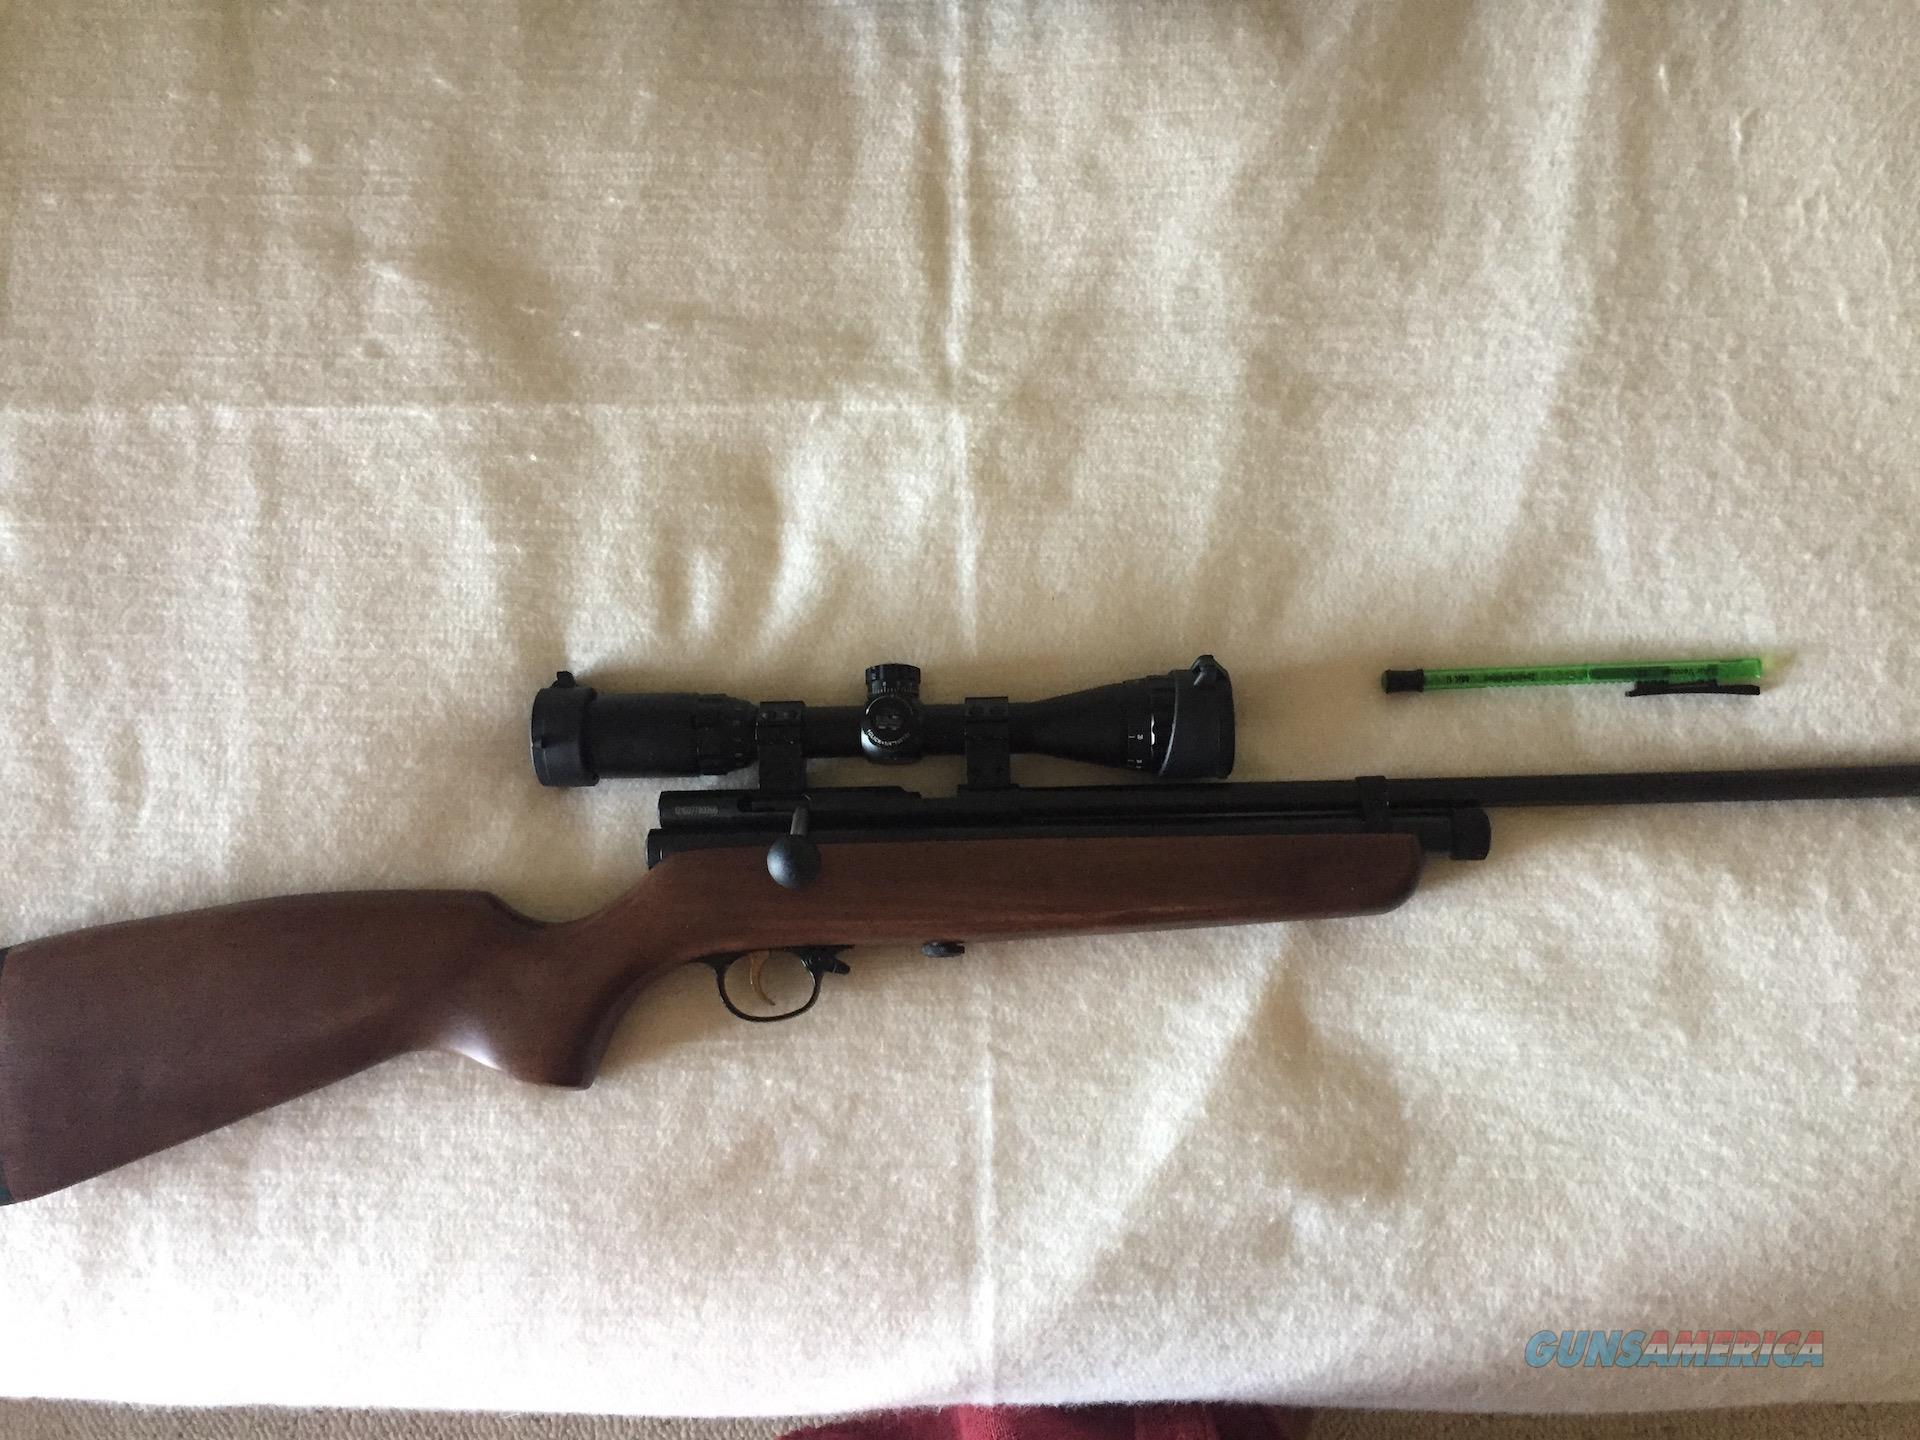 Beeman QB78 Deluxe .22cal CO2 Pellet Rifle w/ Leapers UTG 3-9x32AO scope  Non-Guns > Air Rifles - Pistols > CO2 Rifle